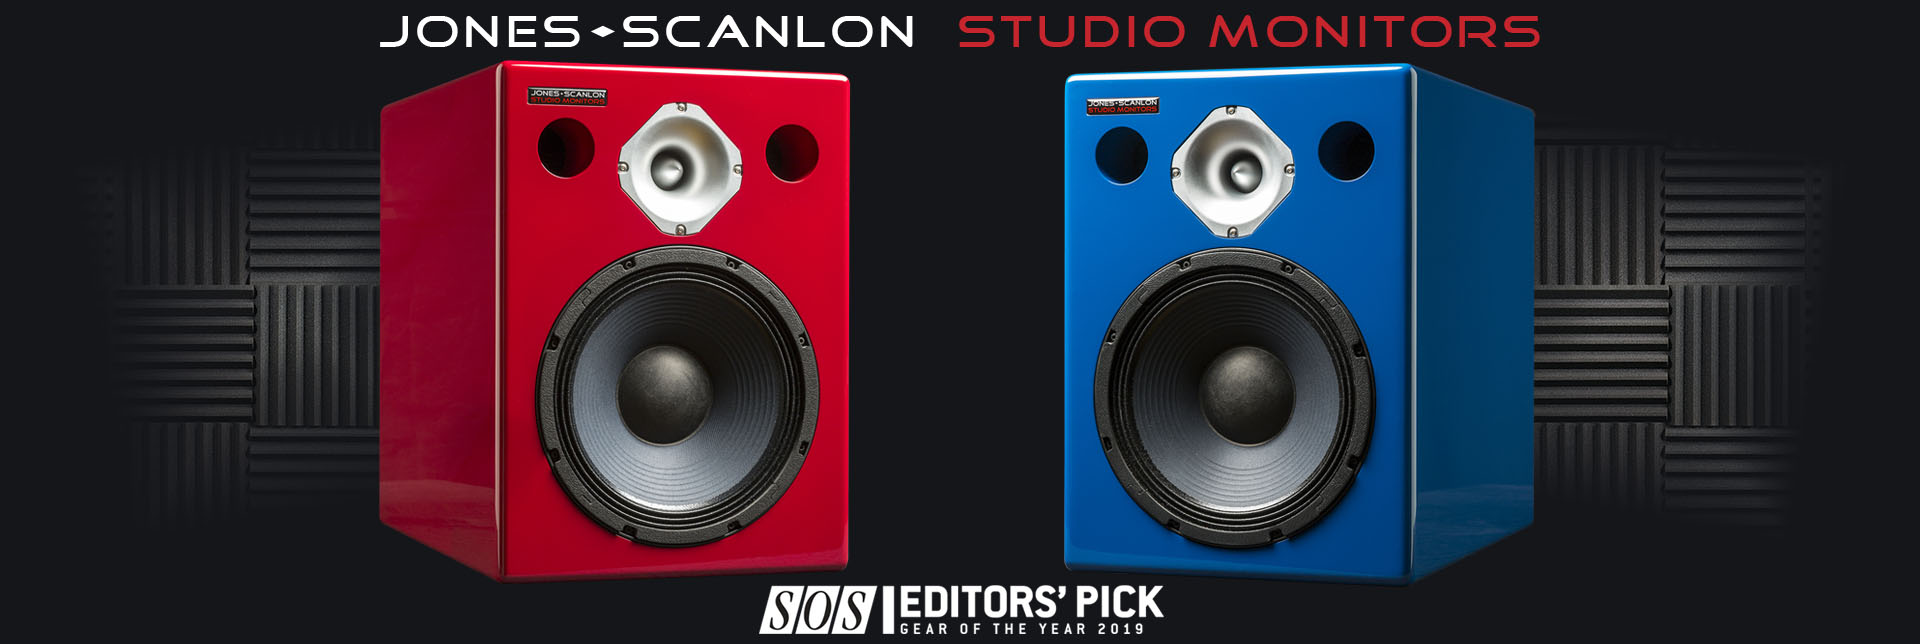 Jones-Scanlon Studio Monitors - recording engineering, audio and film post production, sound track mastering, audio mixing, sound mixing, recording studio gear.